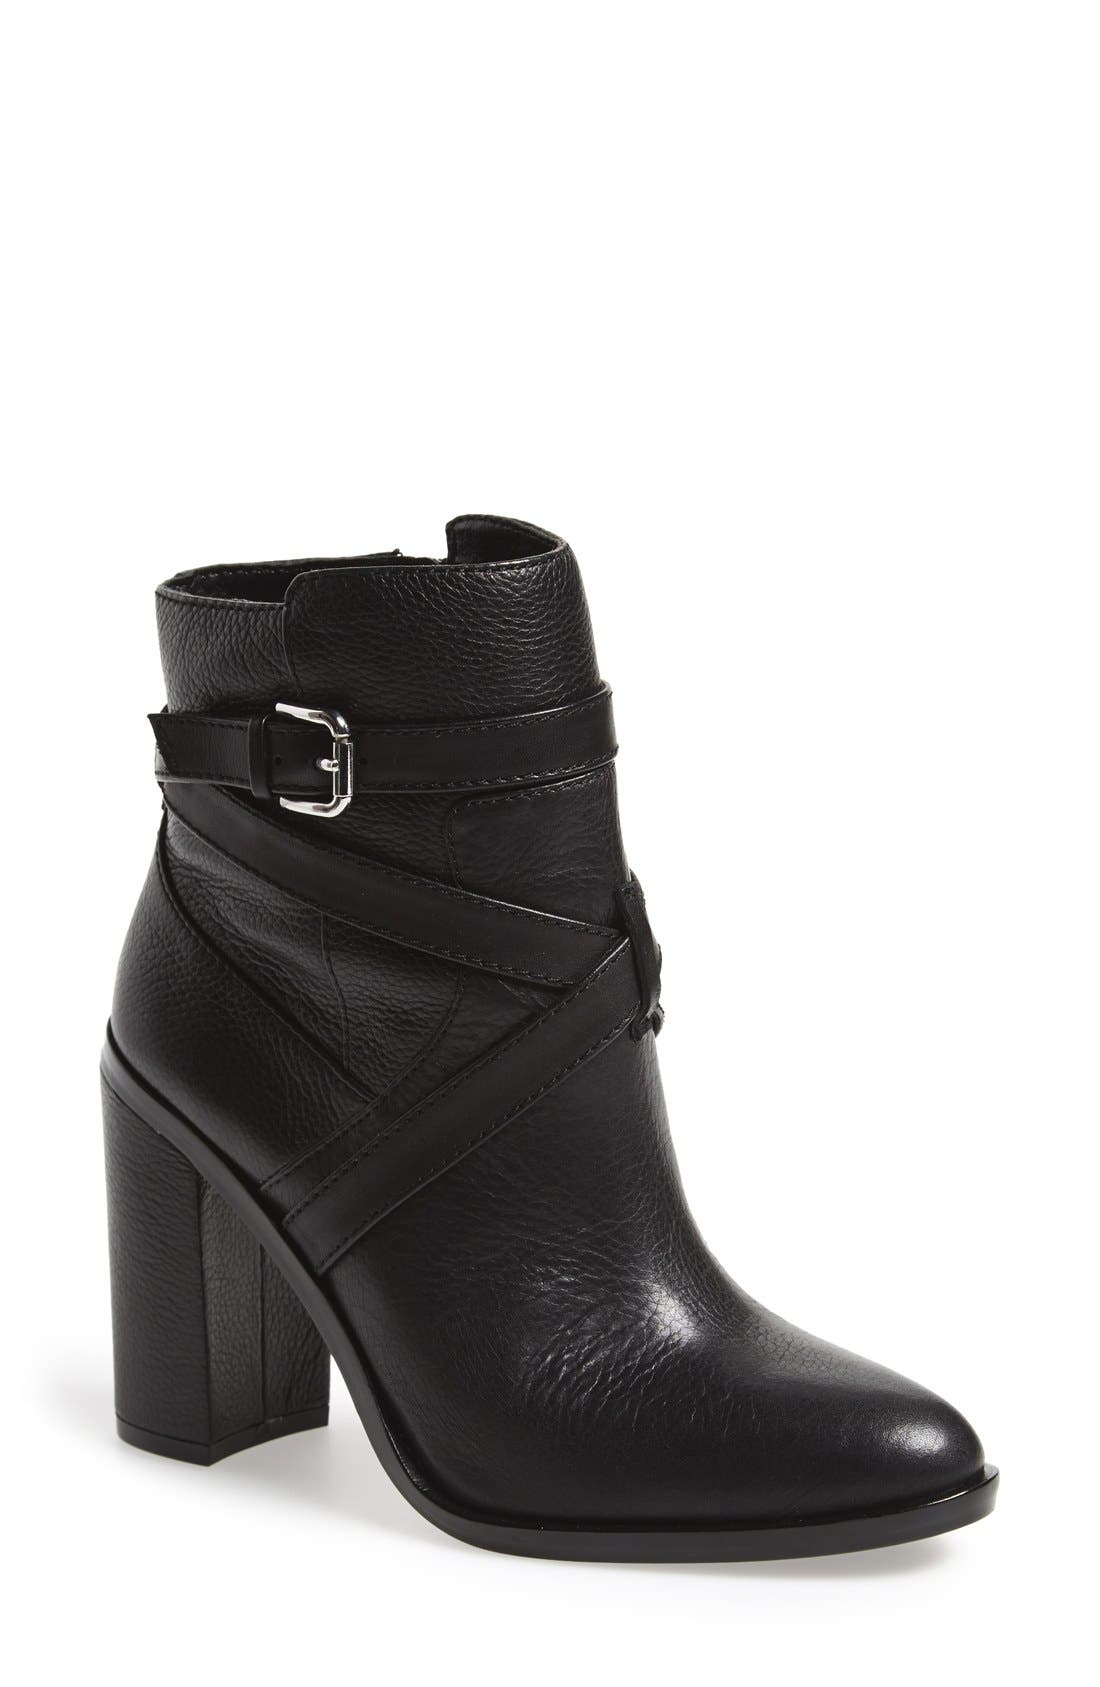 VINCE CAMUTO 'Gravell' Belted Boot, Main, color, 001